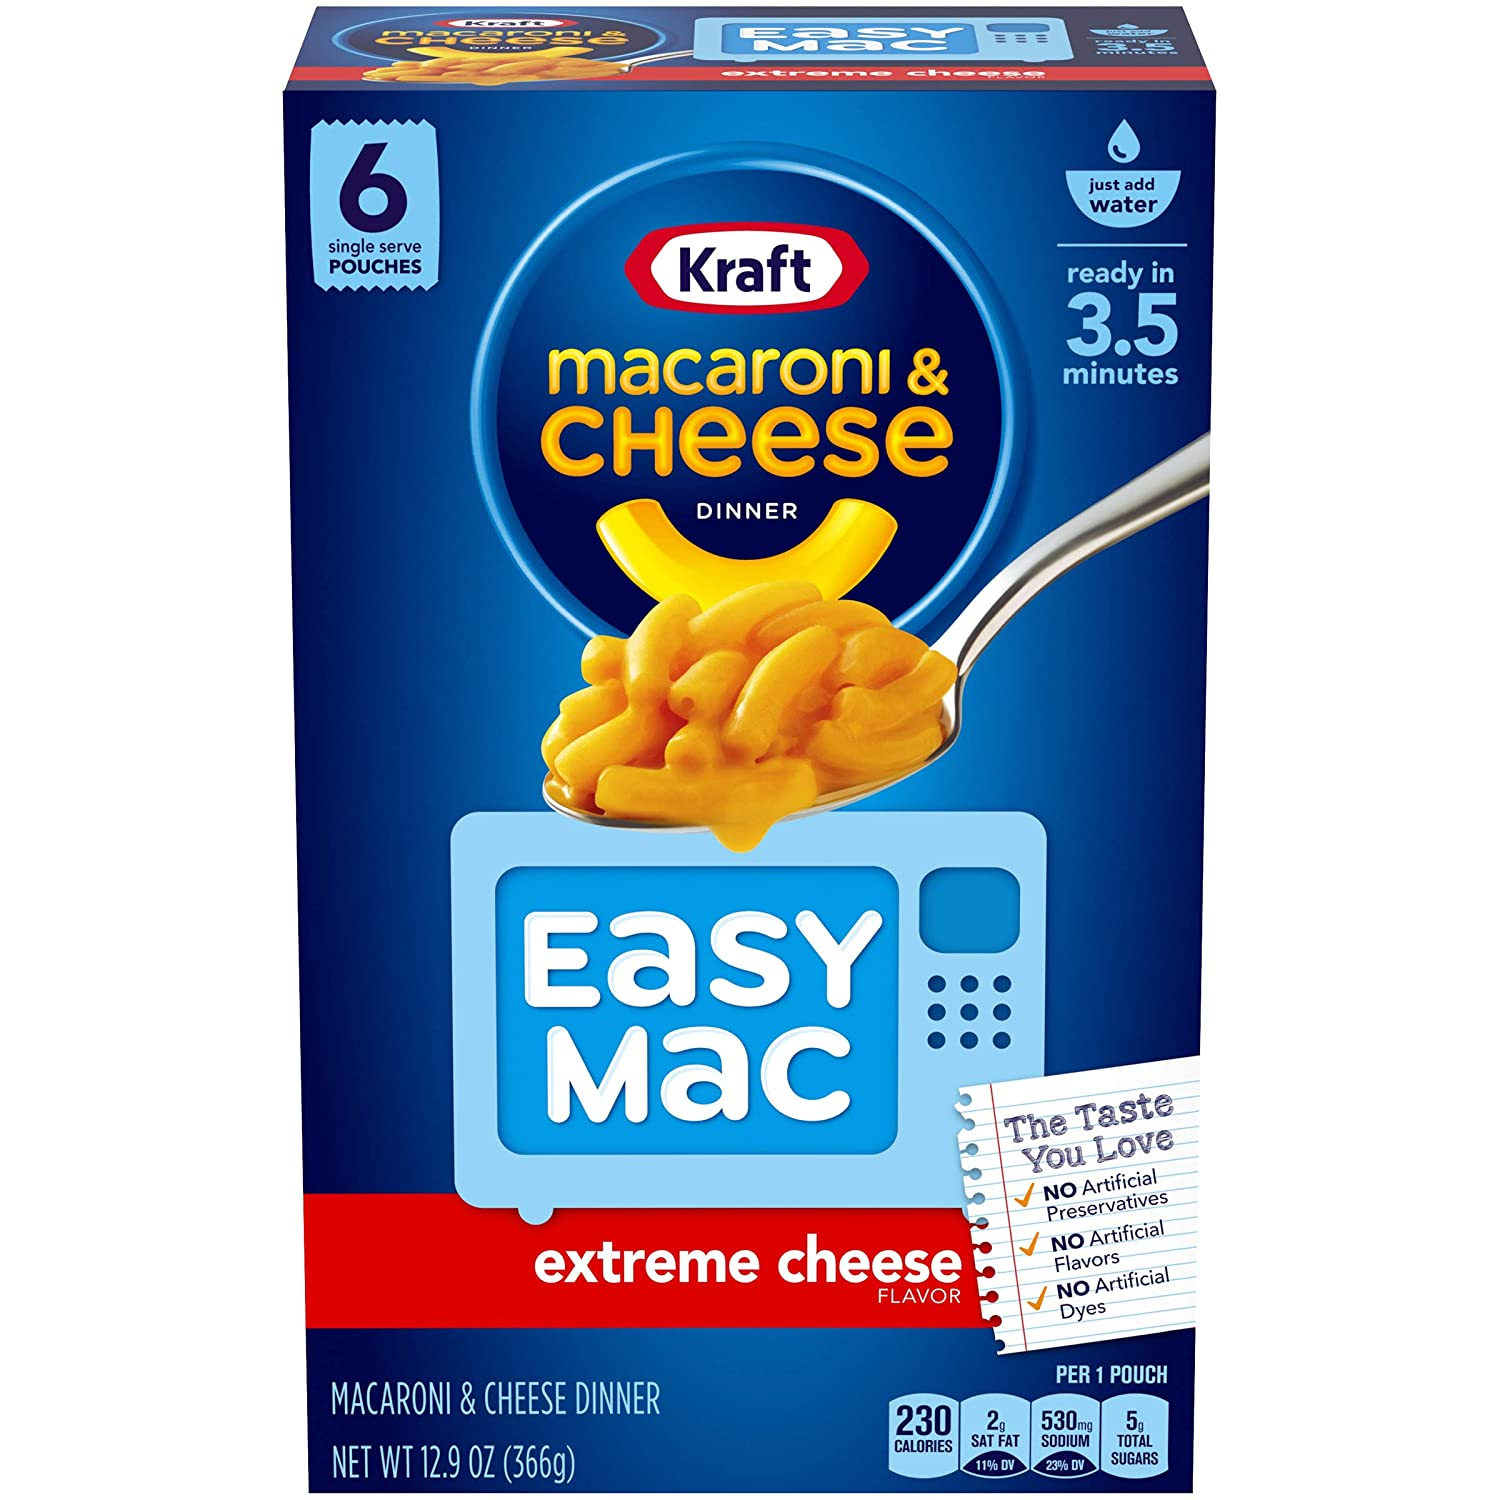 Kraft Easy Mac Extreme Cheese Macaroni and Cheese, 6 ct - 12.9 oz Box (Pack of 8)